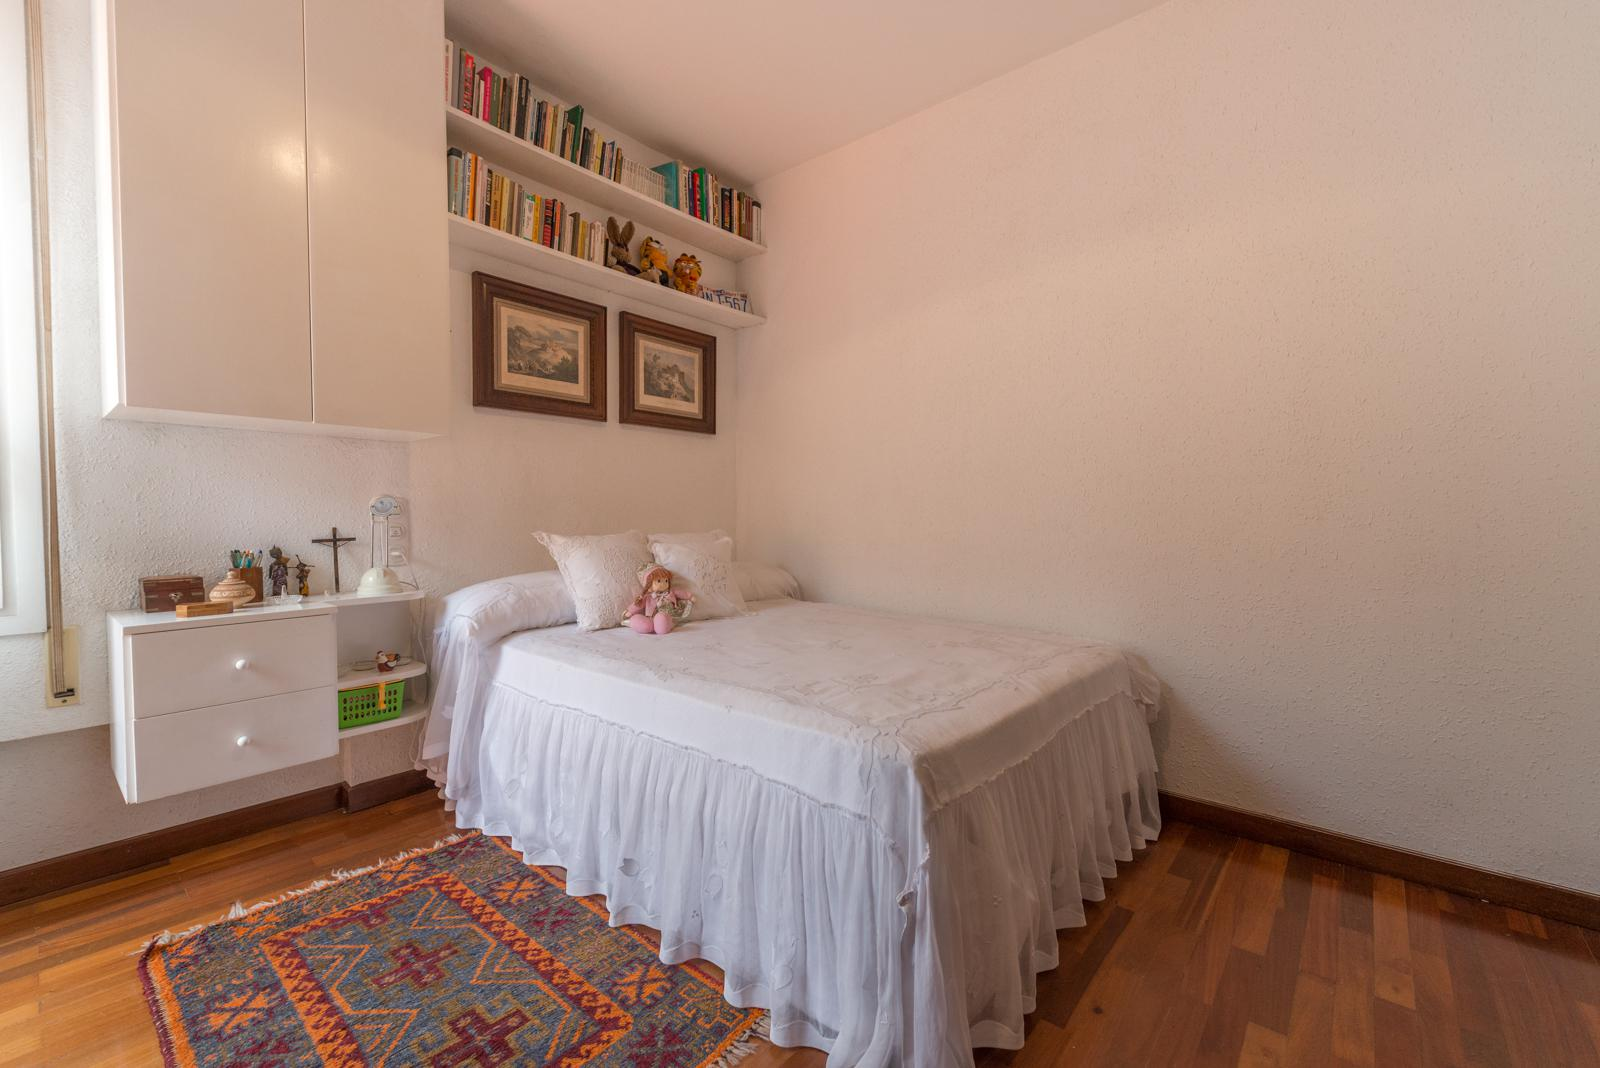 74341 Townhouse for sale in Gràcia, Vallcarca i els Penitents 22